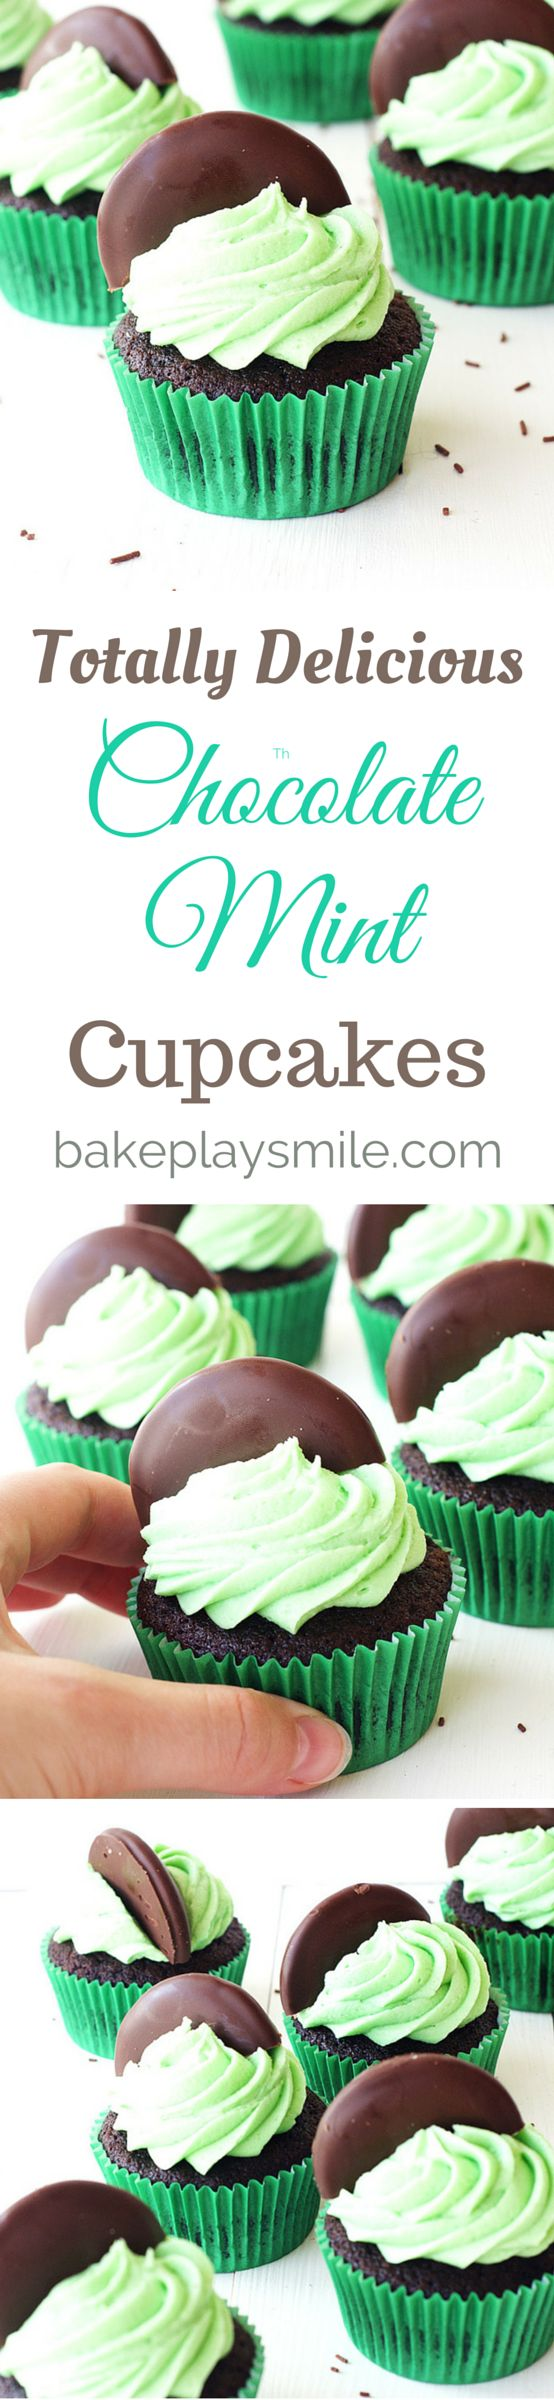 The most deliciously simple Chocolate Cupcakes with Mint Frosting AND chocolate mint cookies for the cutest decoration!!! So easy and pretty! #chocolate #mint #cupcakes #easy #recipe